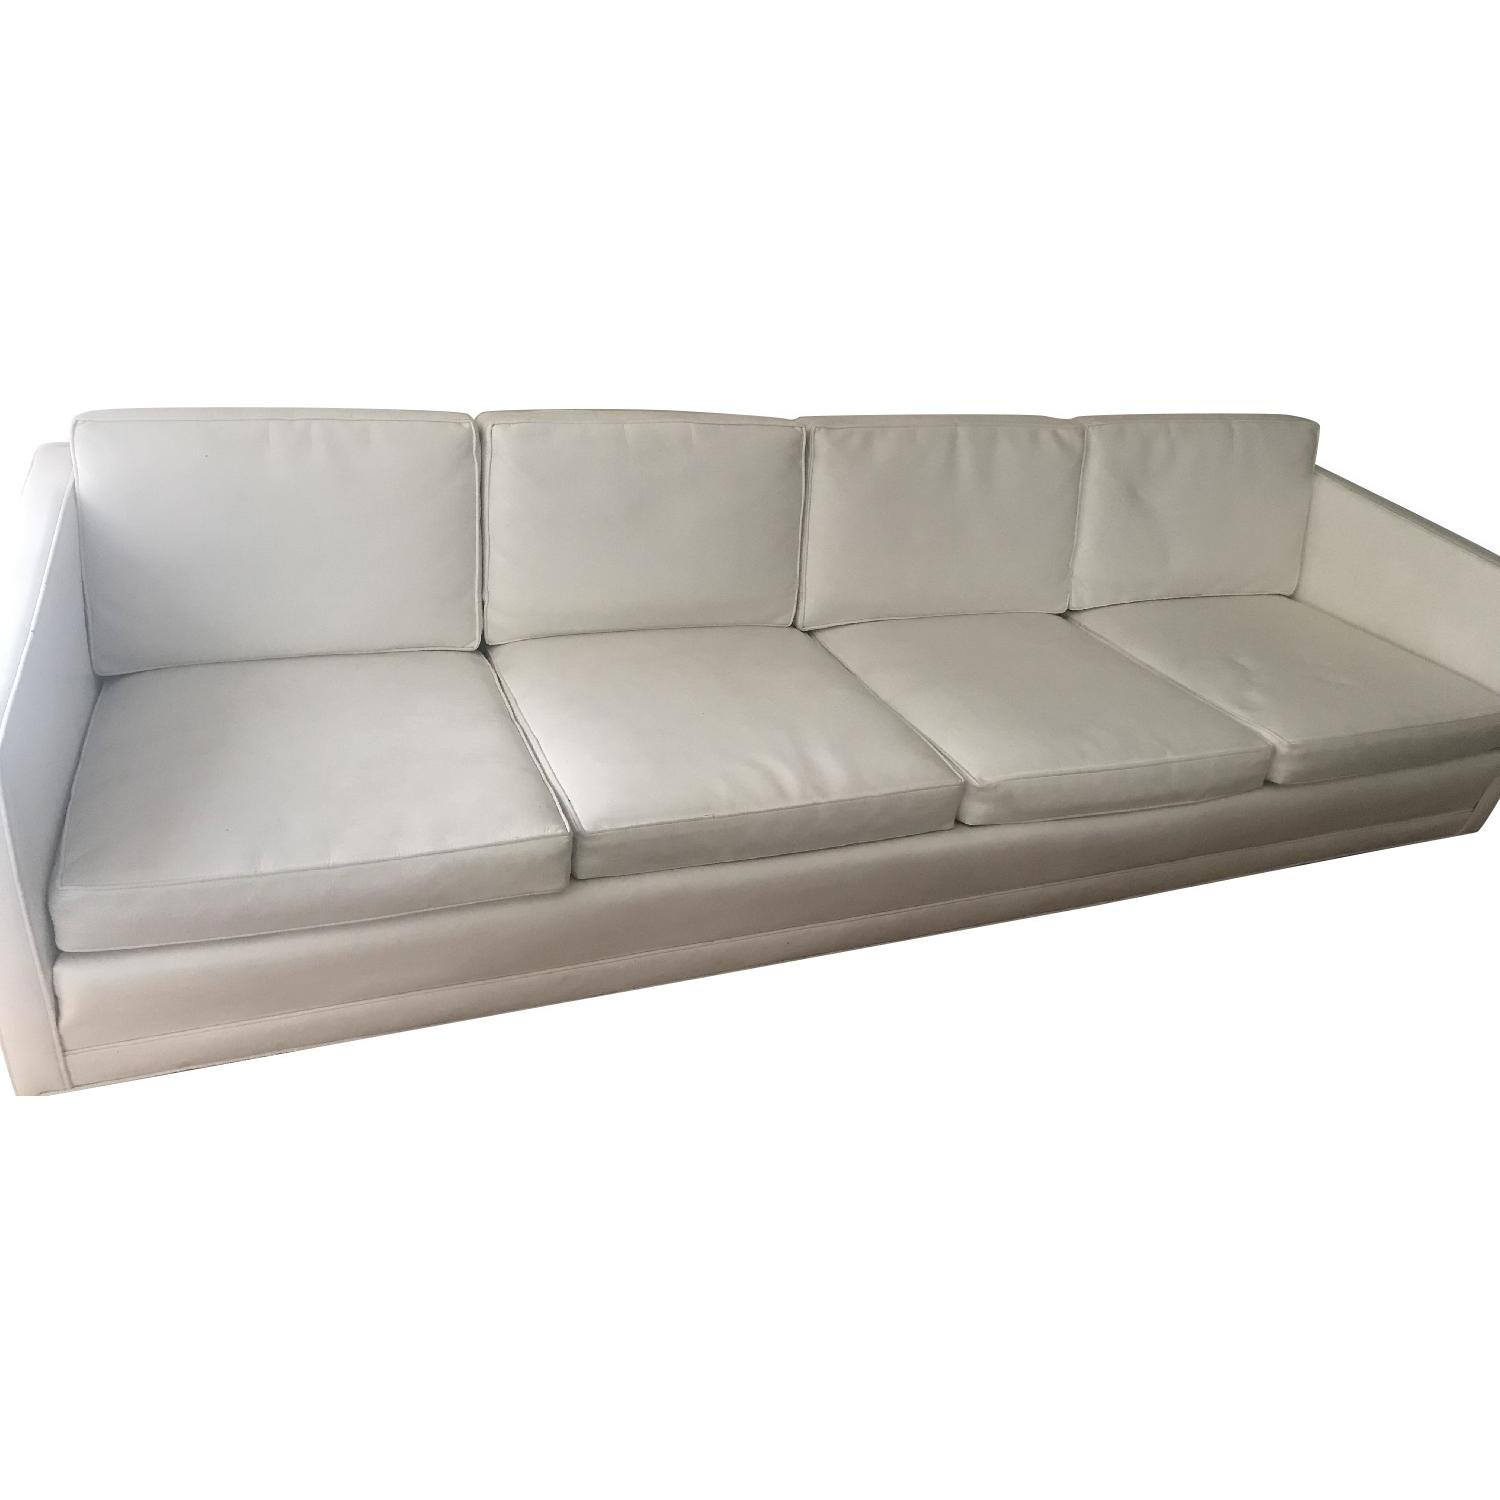 Drexel 1960s White Leather Modern Sofa - image-0